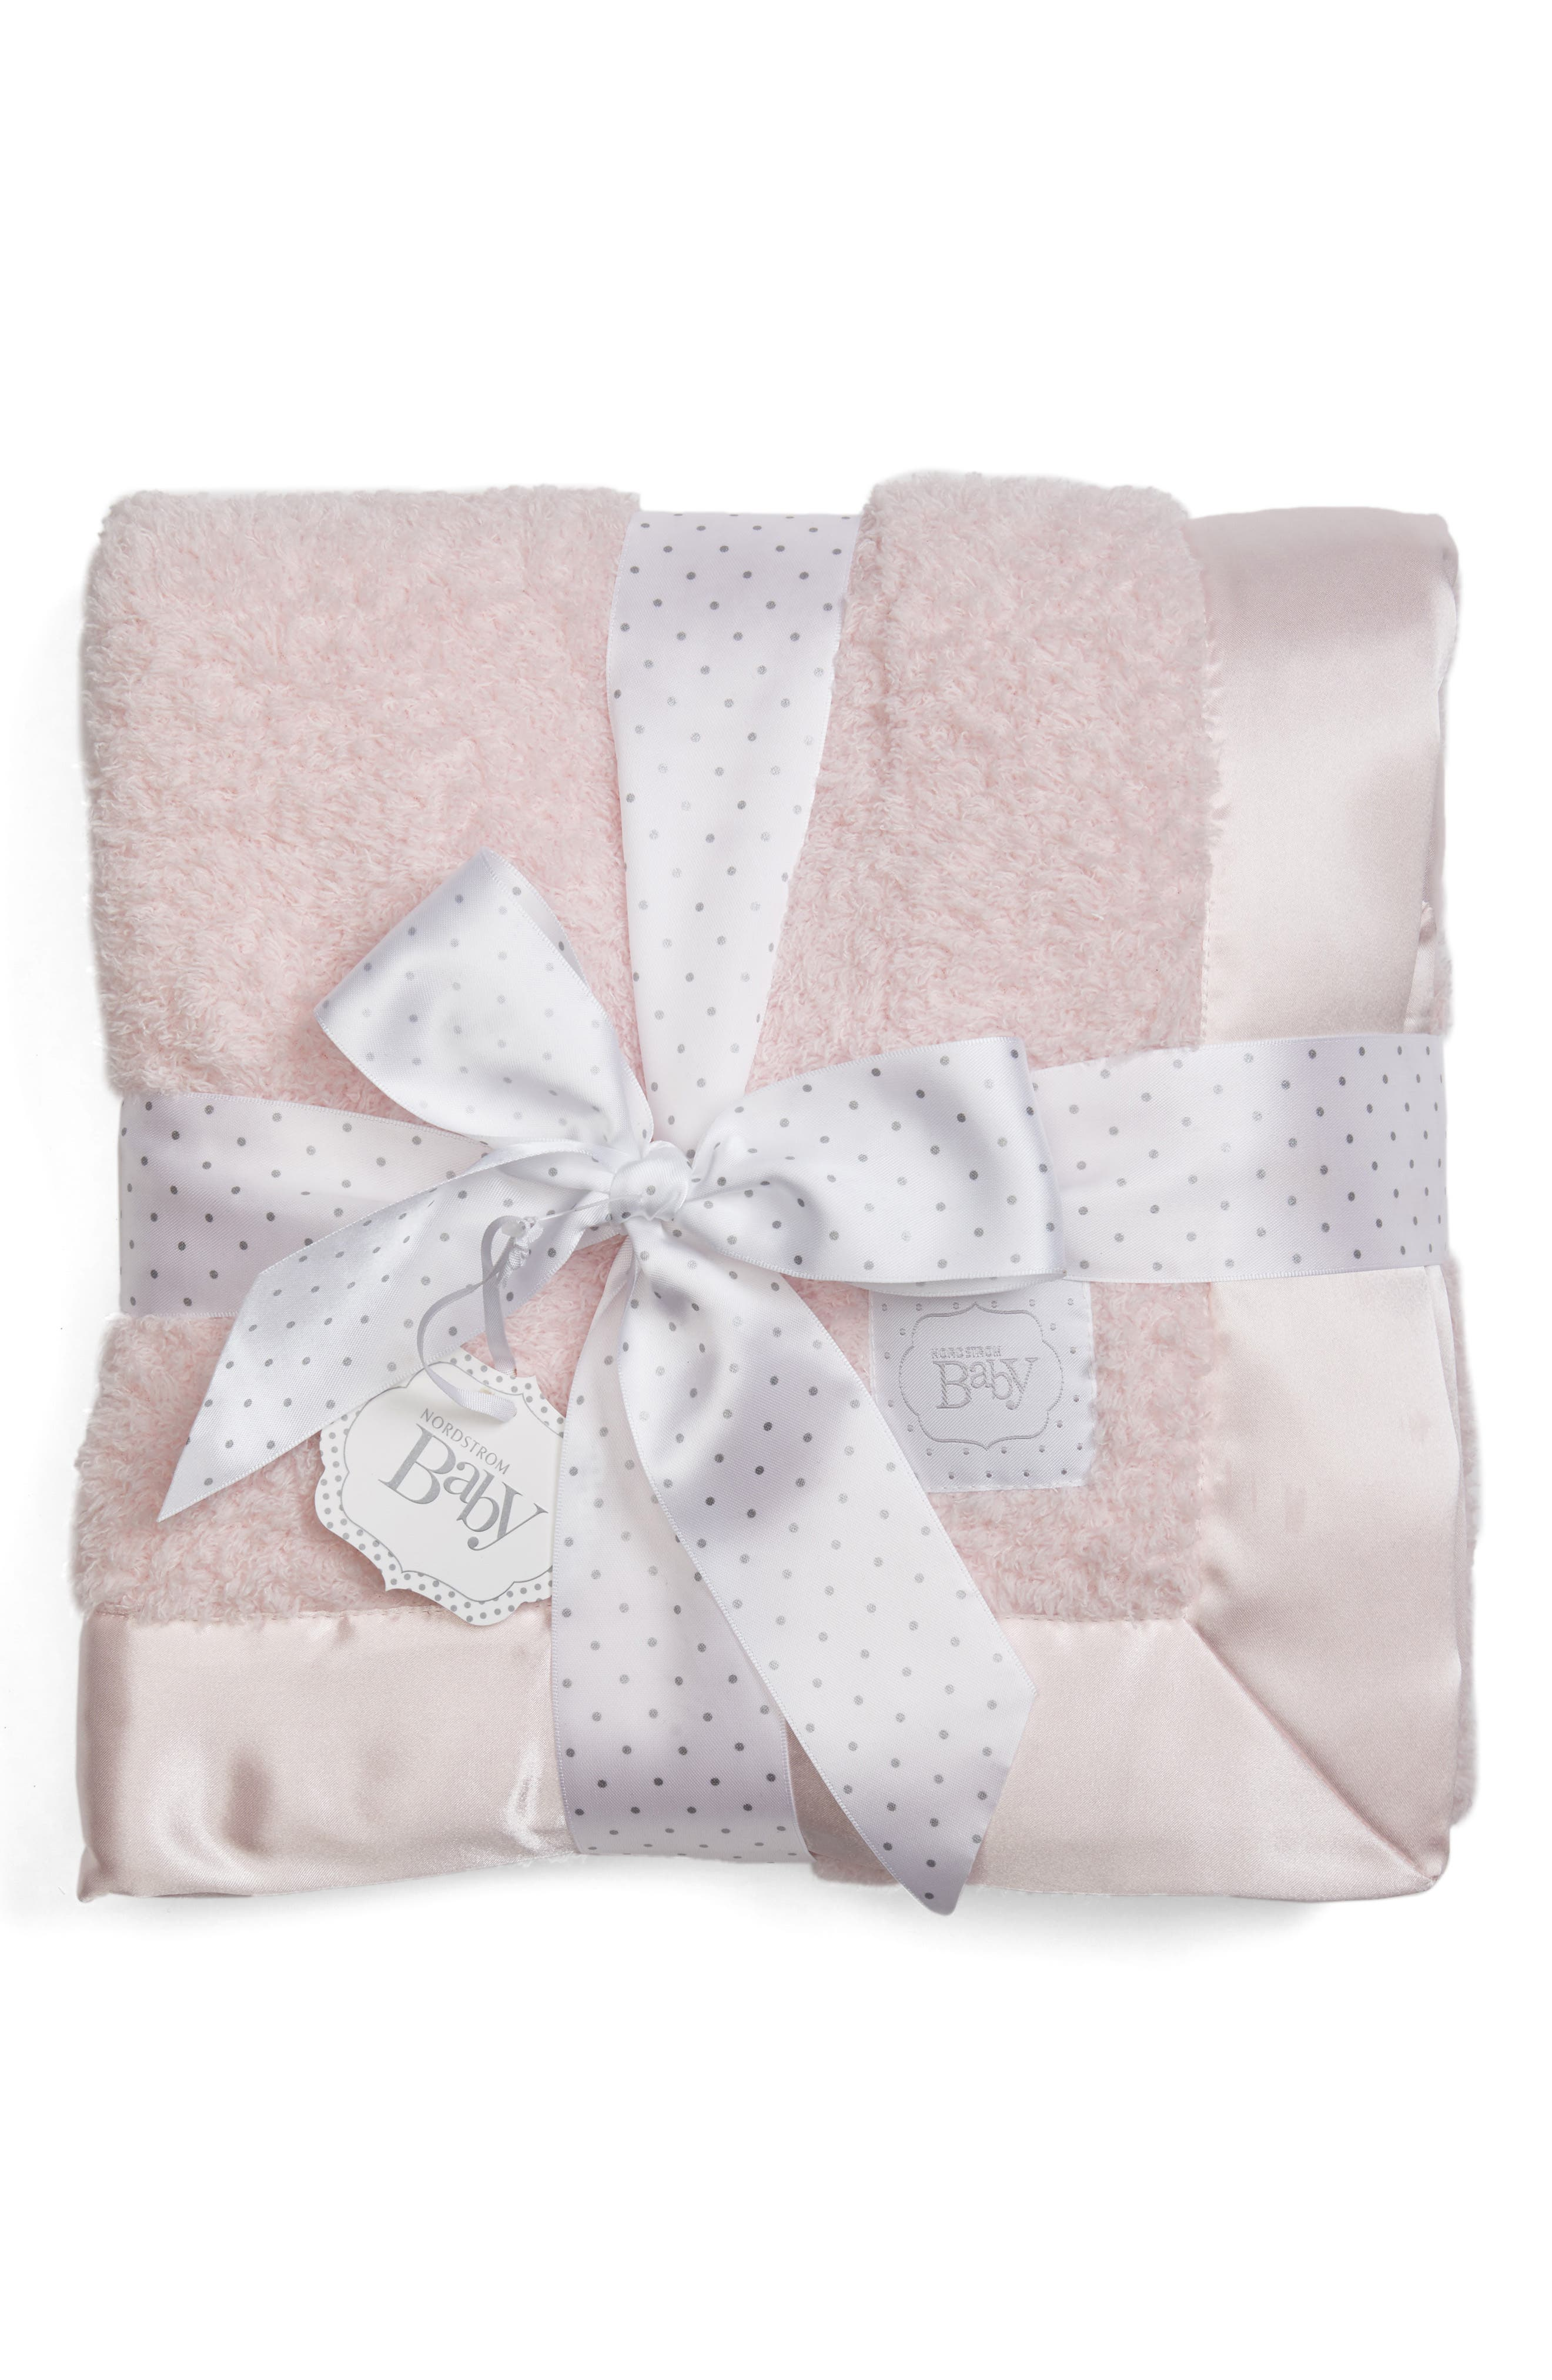 Luxe Chenille Blanket,                             Main thumbnail 1, color,                             Pink Baby